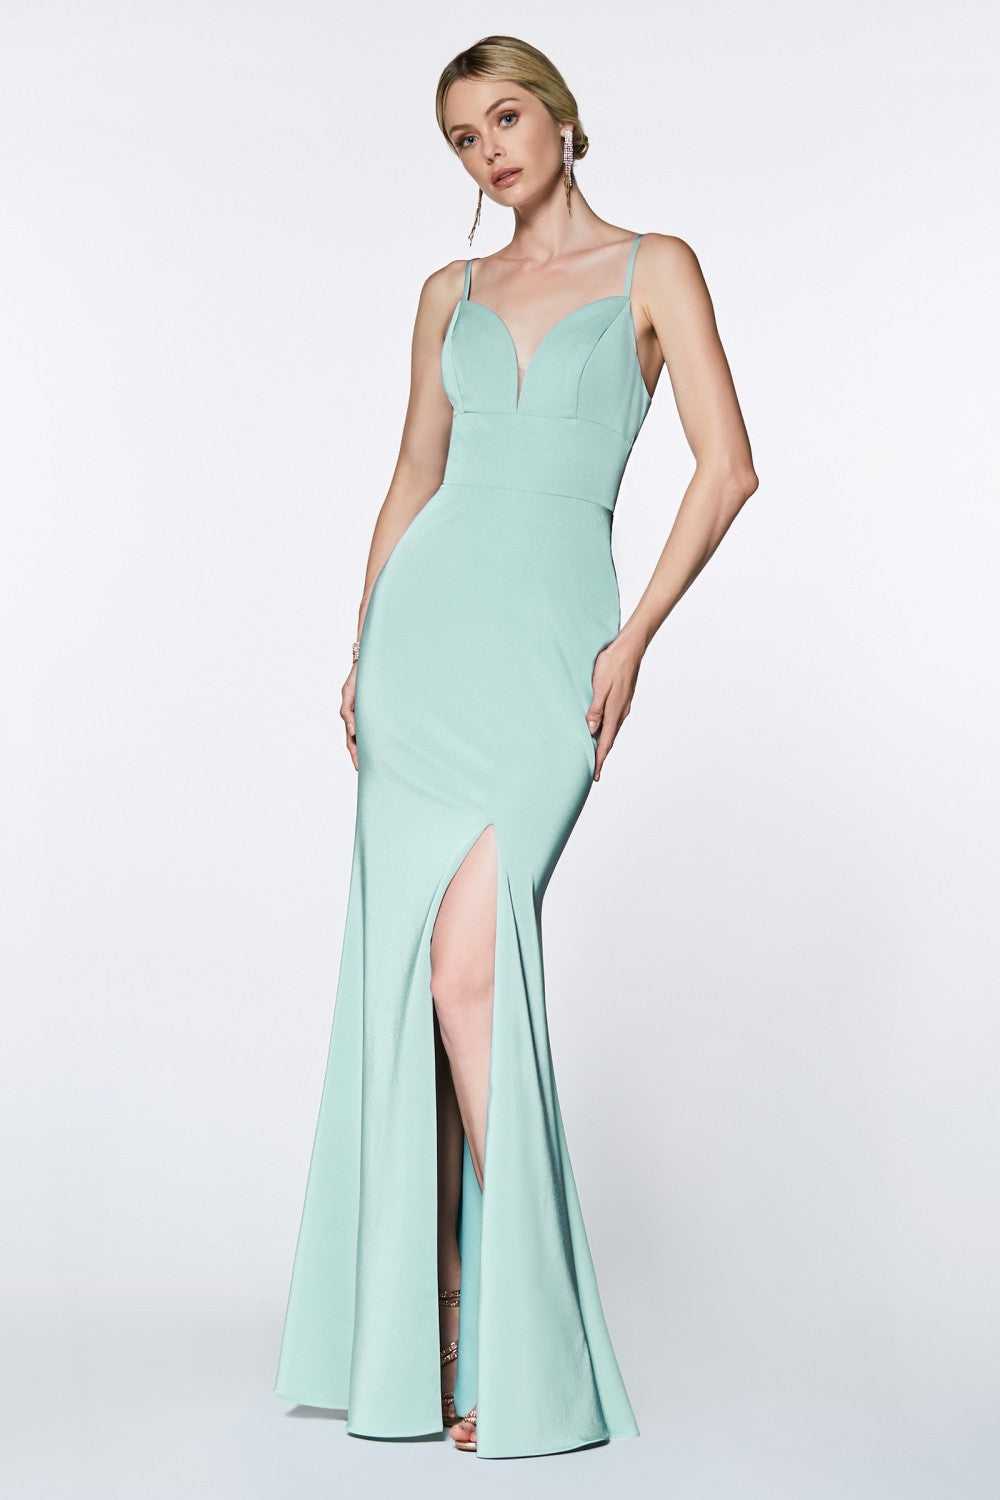 Yolanda Bridesmaid Dress Straight Skirt with front Slit in Seafoam  C7470NR-Seafoam SAMPLE IN STORE